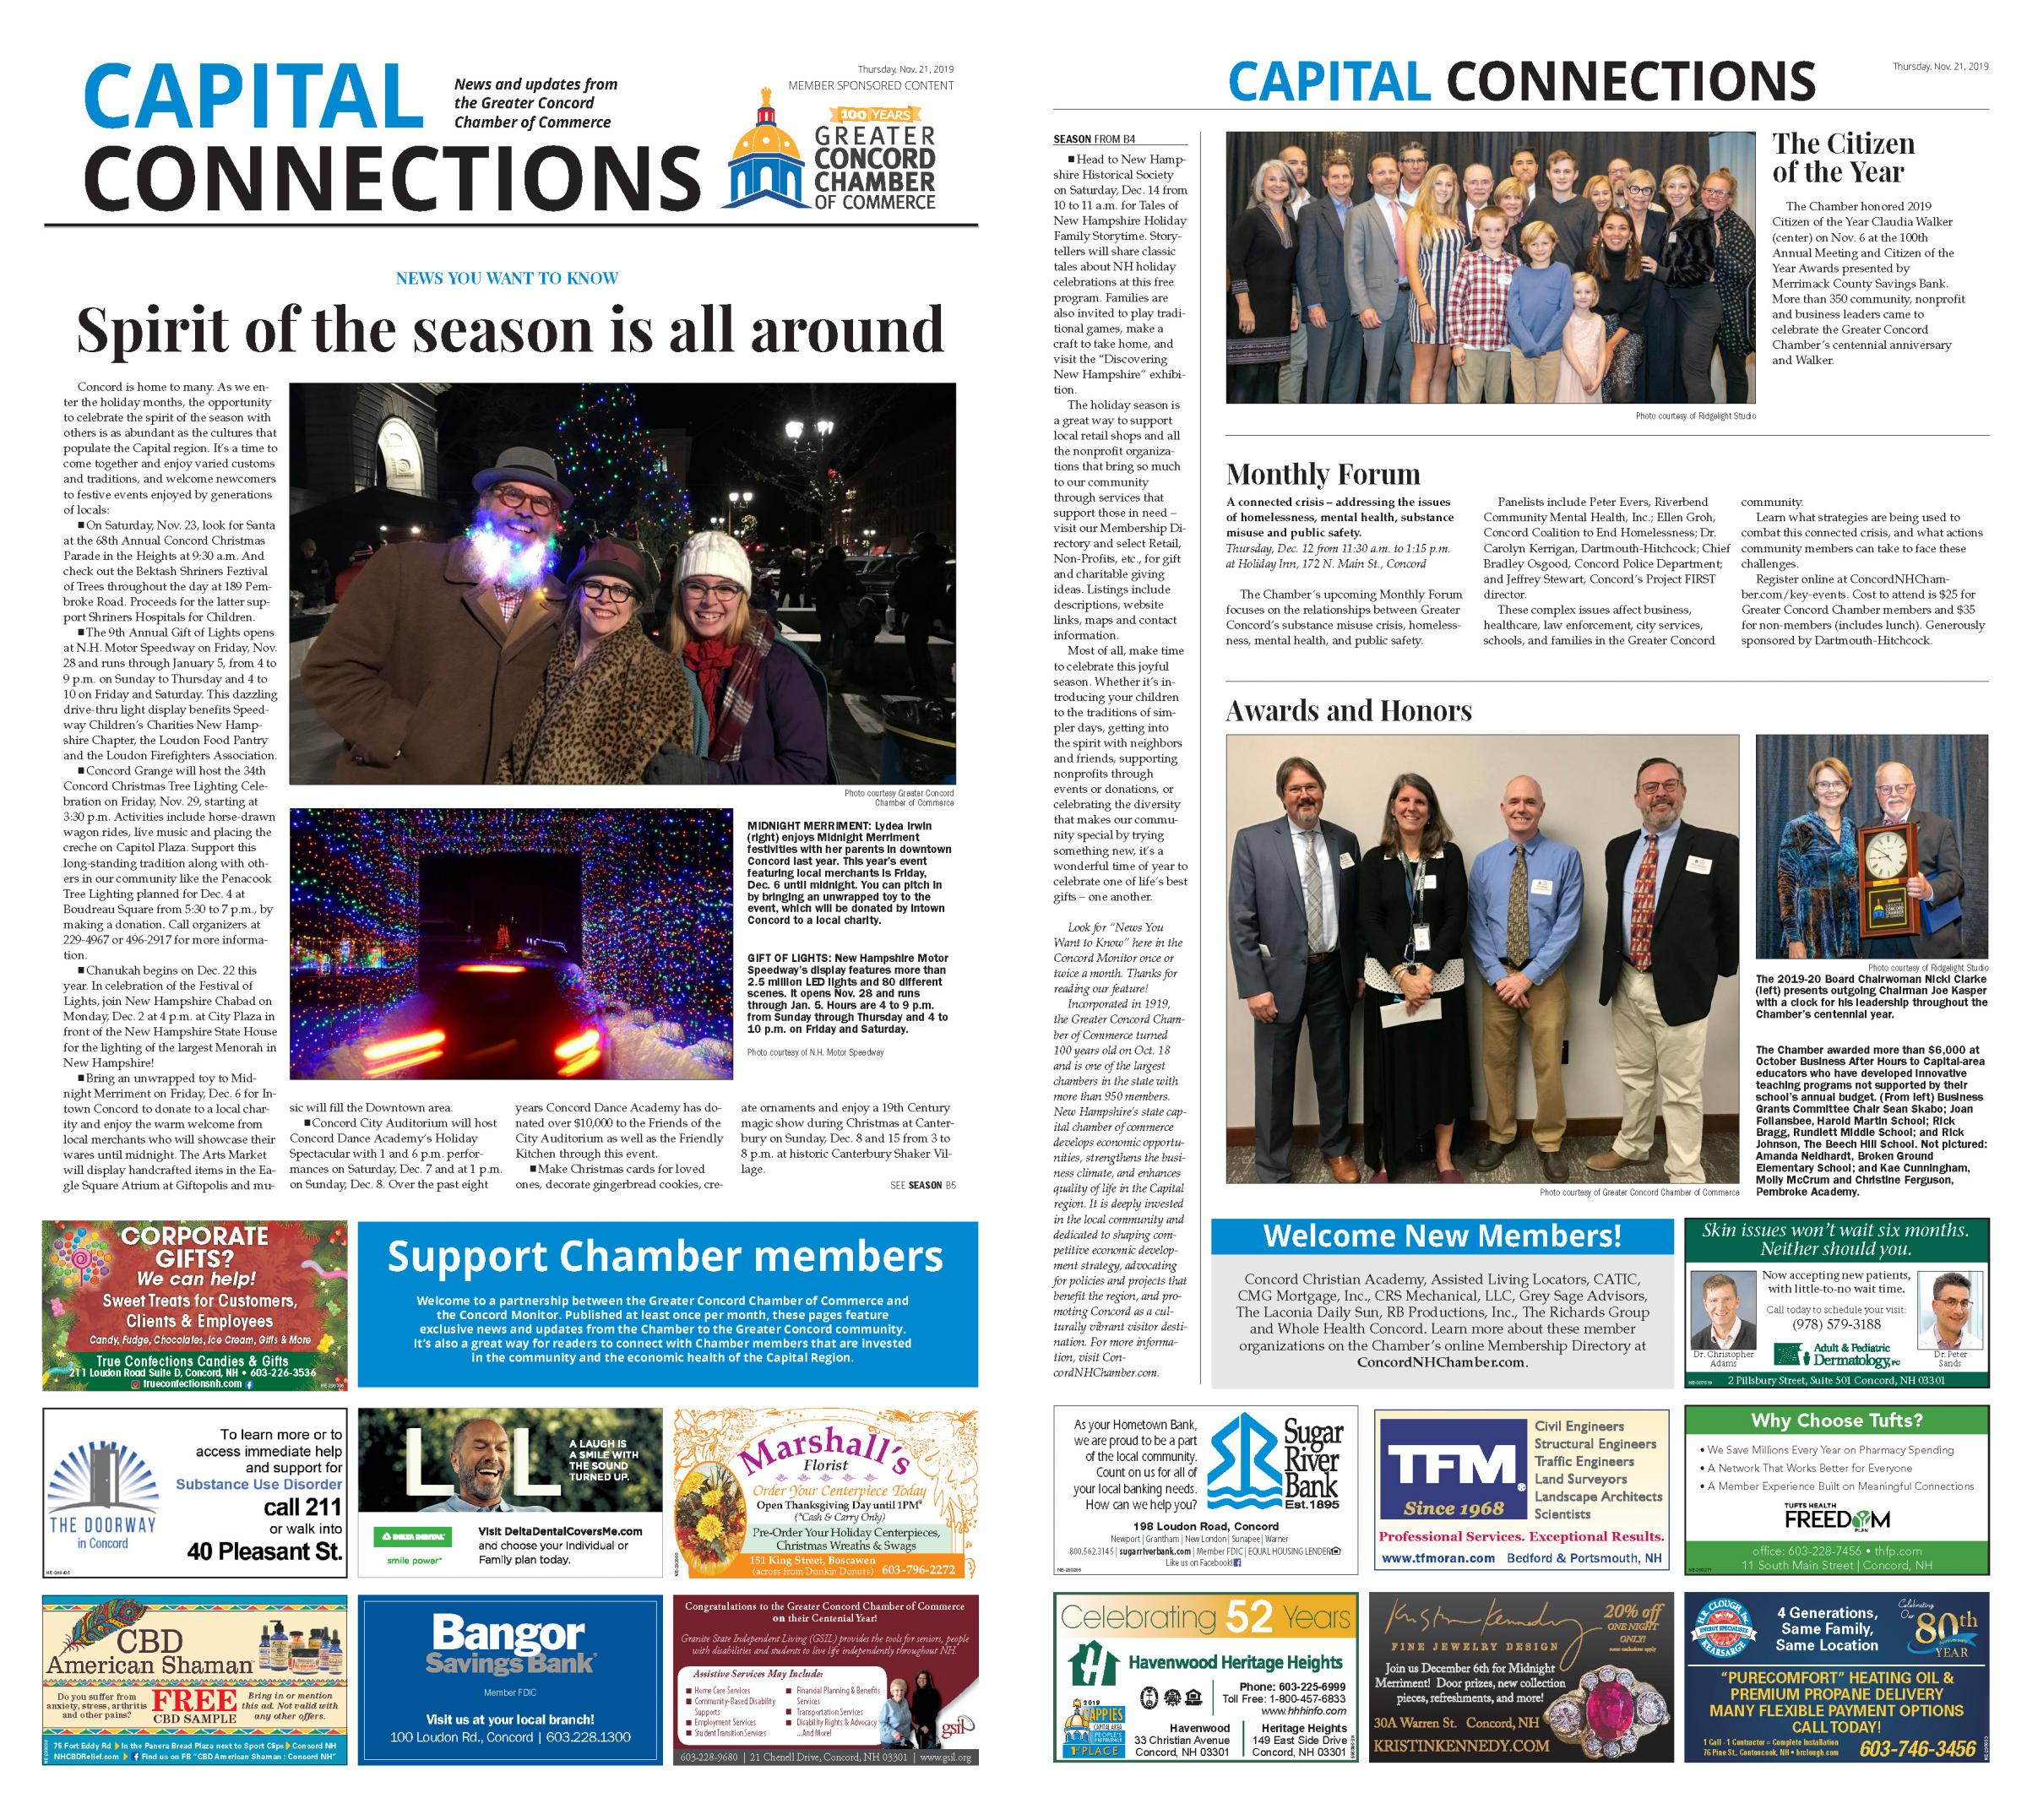 Read the Chamber's November 21 Capital Connections feature in The Concord Monitor.